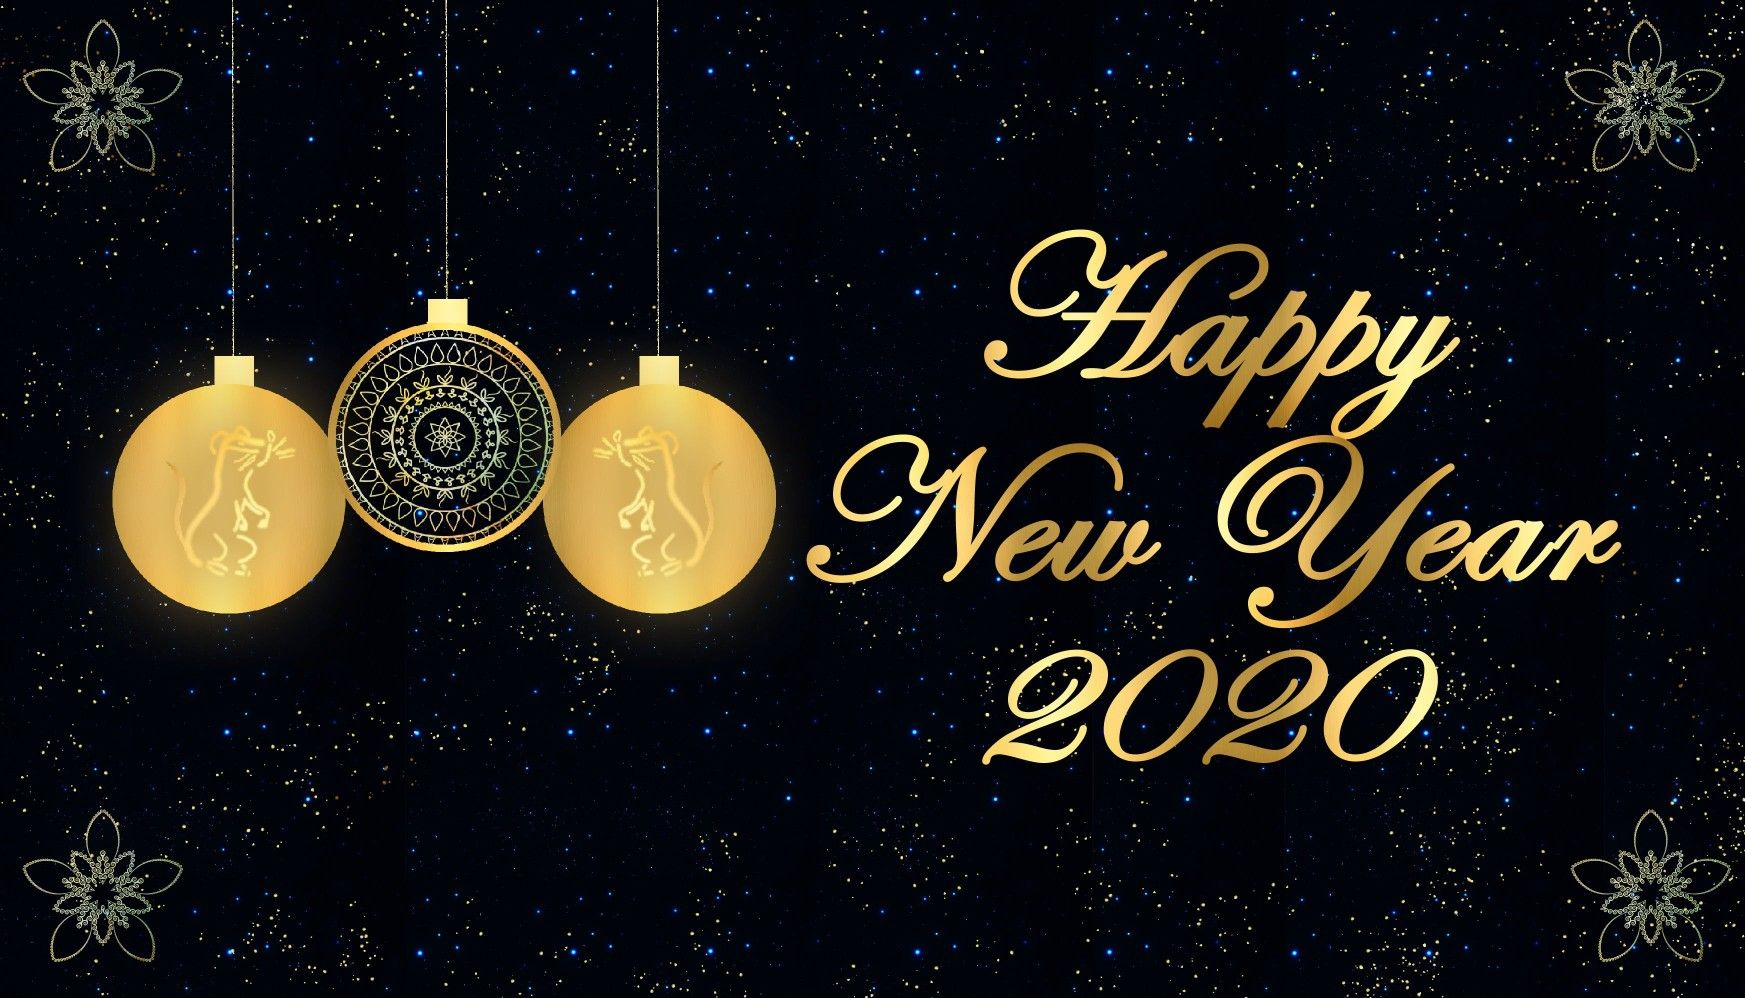 Best Golden Black Image for the new year 2020 New year